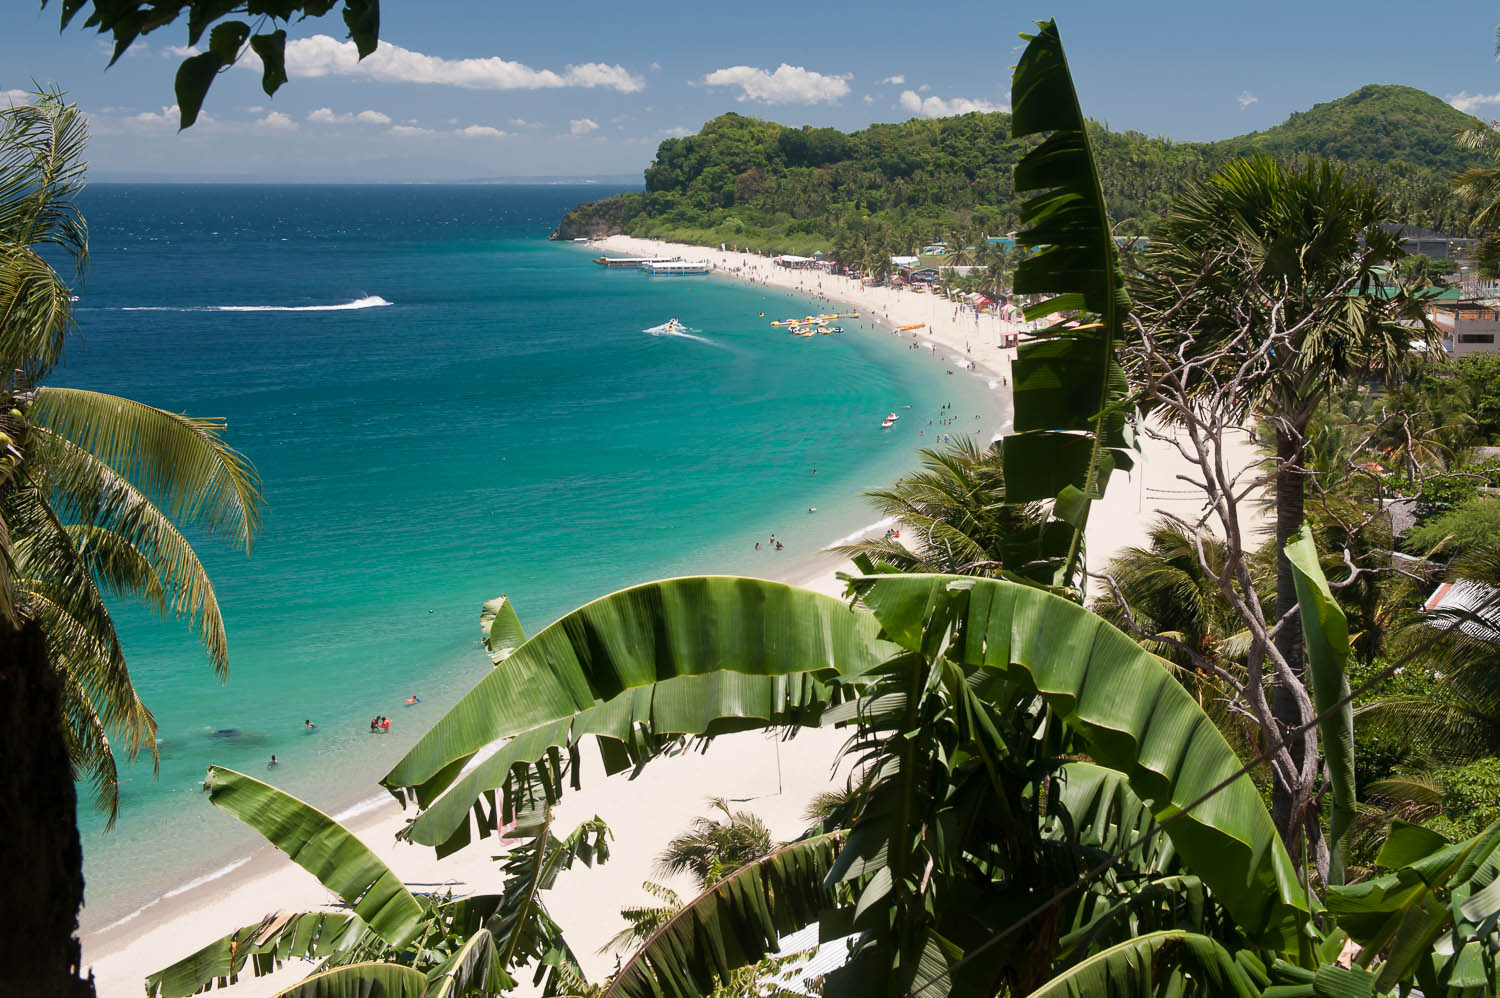 The Philippines has hundreds of white sand beaches. Image:  © David Astley